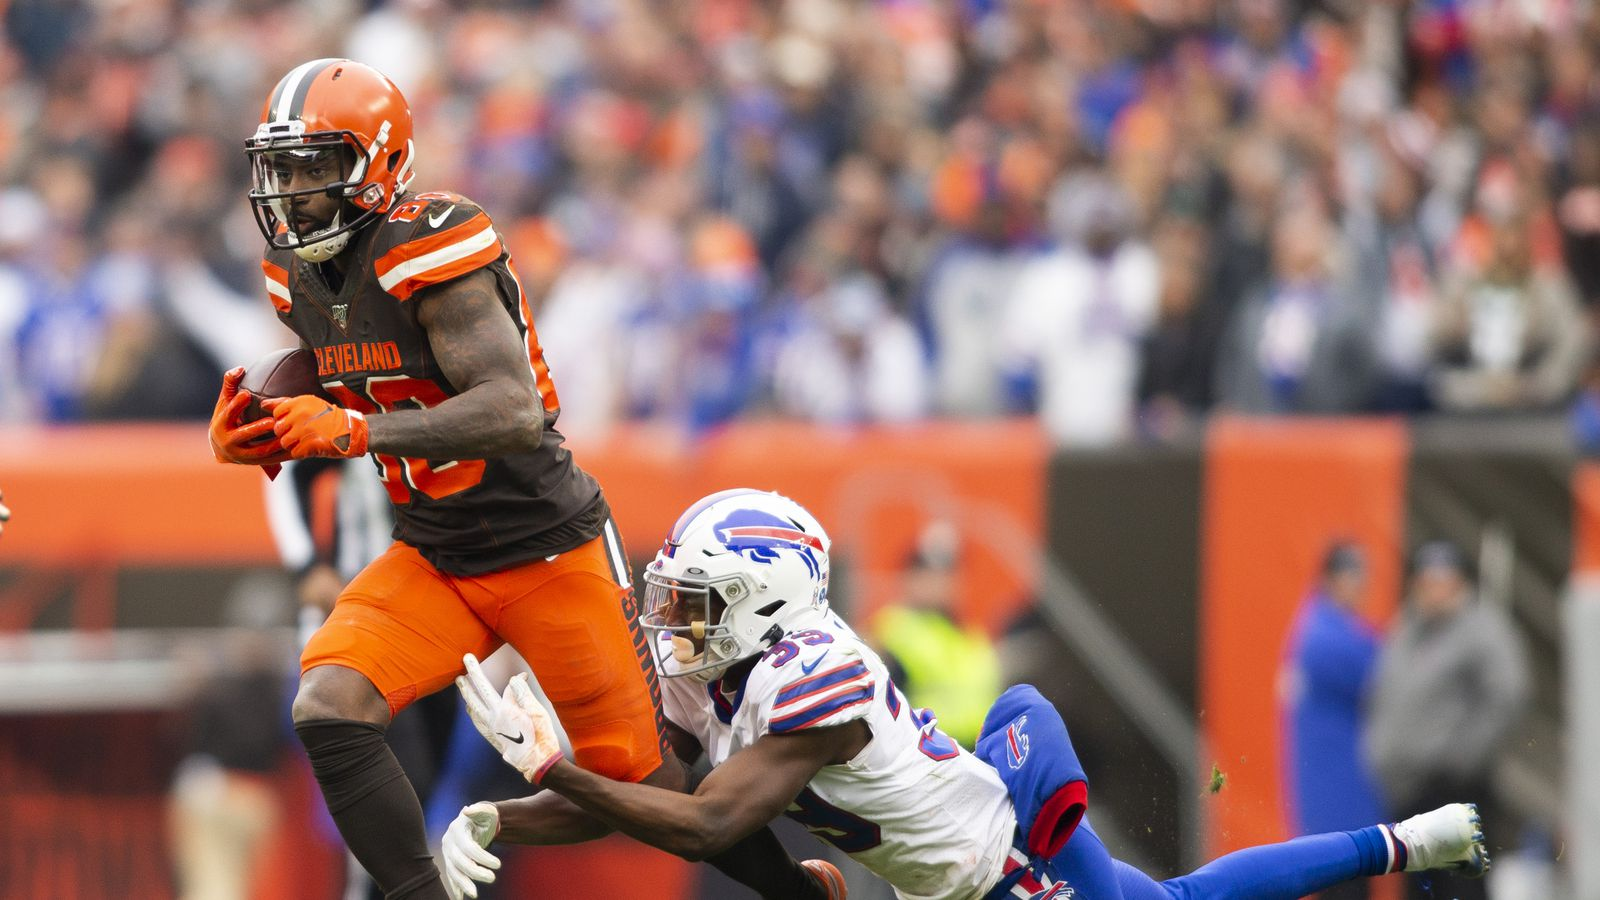 Watch: Mayfield connects with Landry to Buffalo 7